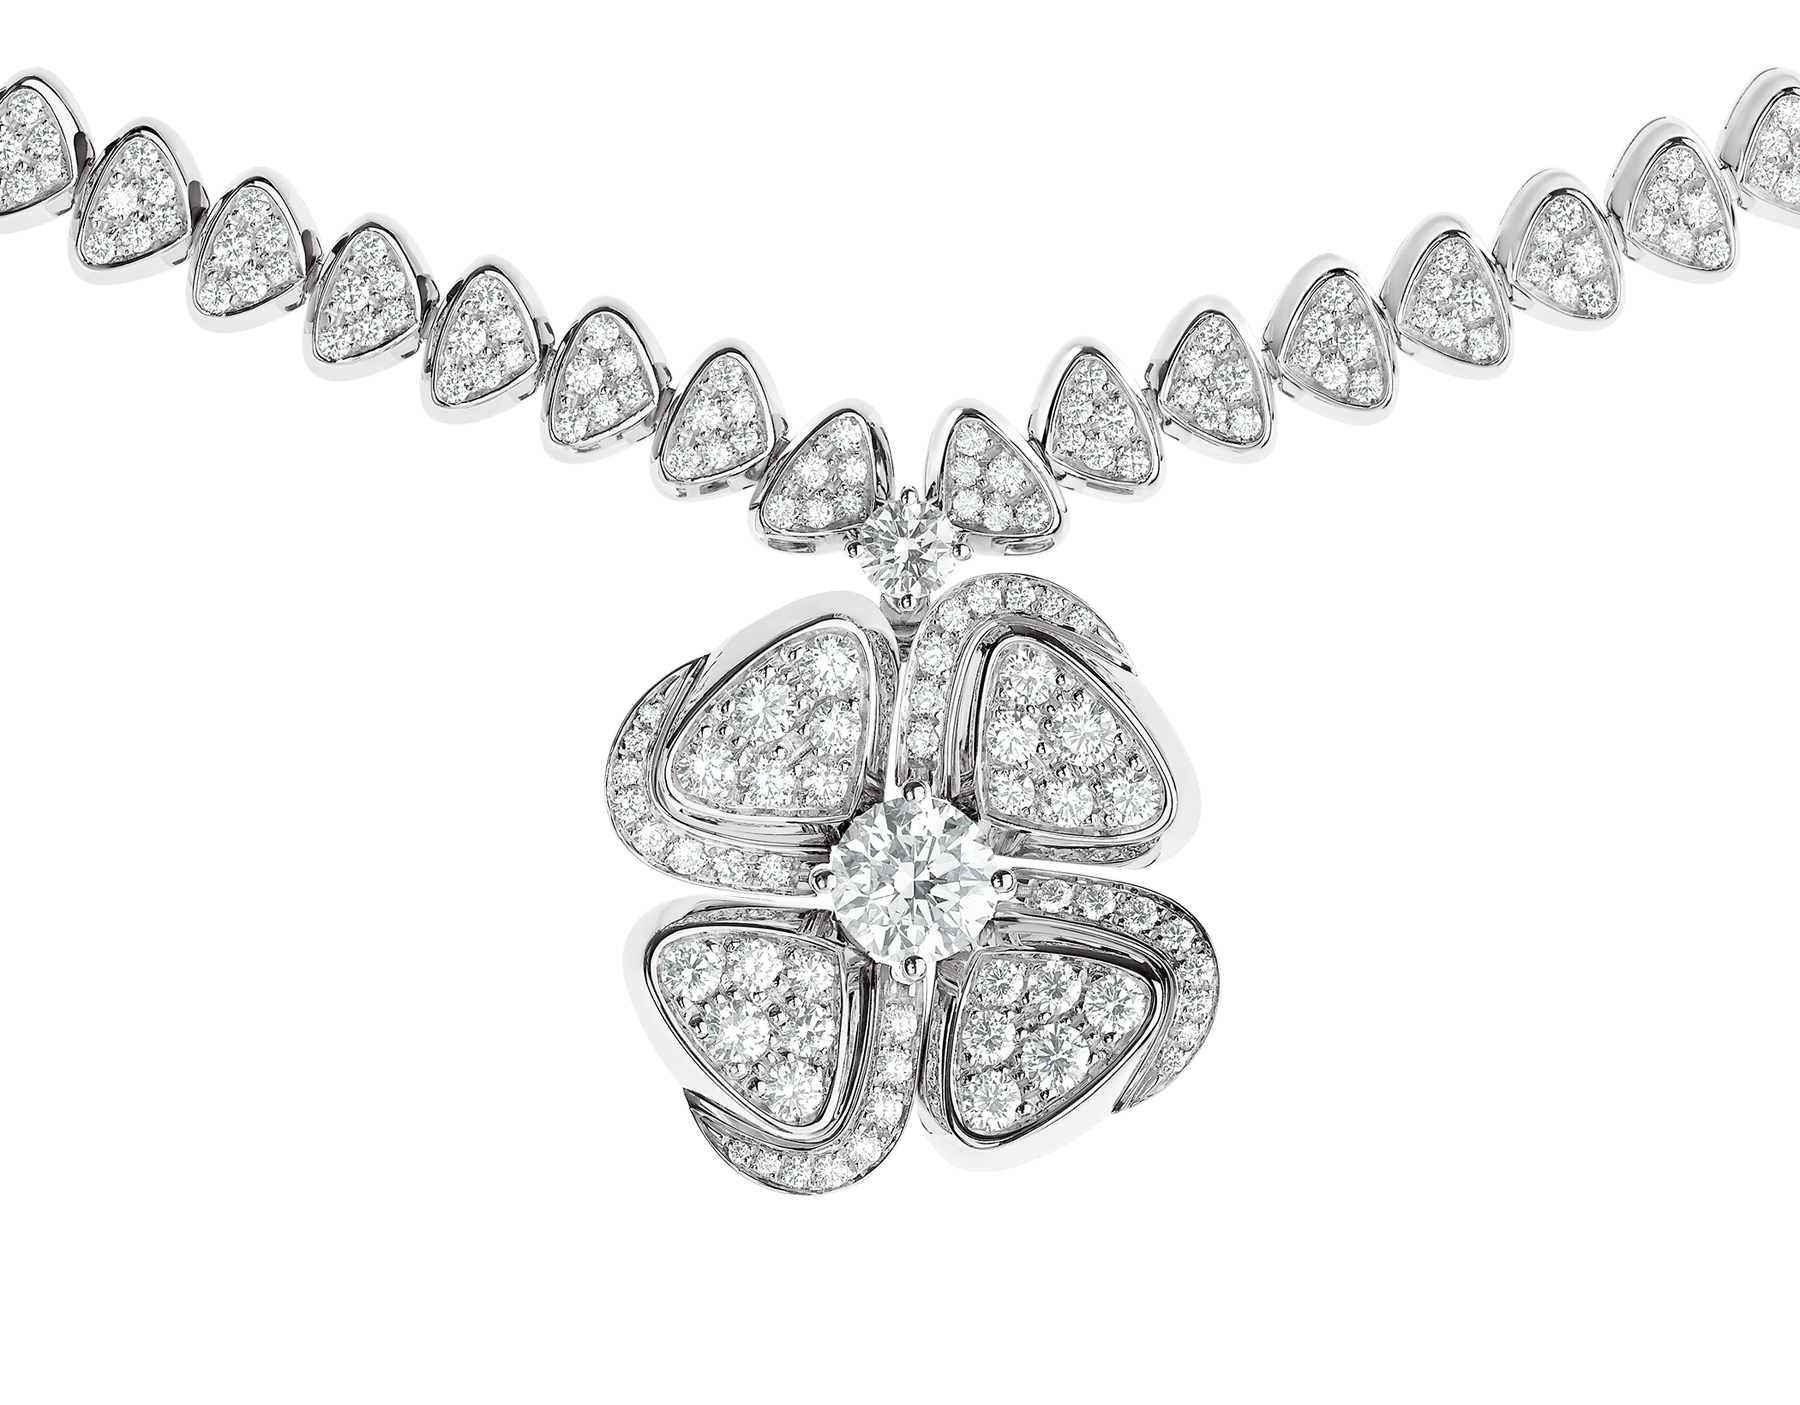 Fiorever 18 kt white gold necklace set with a central diamond (0.70 ct) and pavé diamonds 357377 image 3